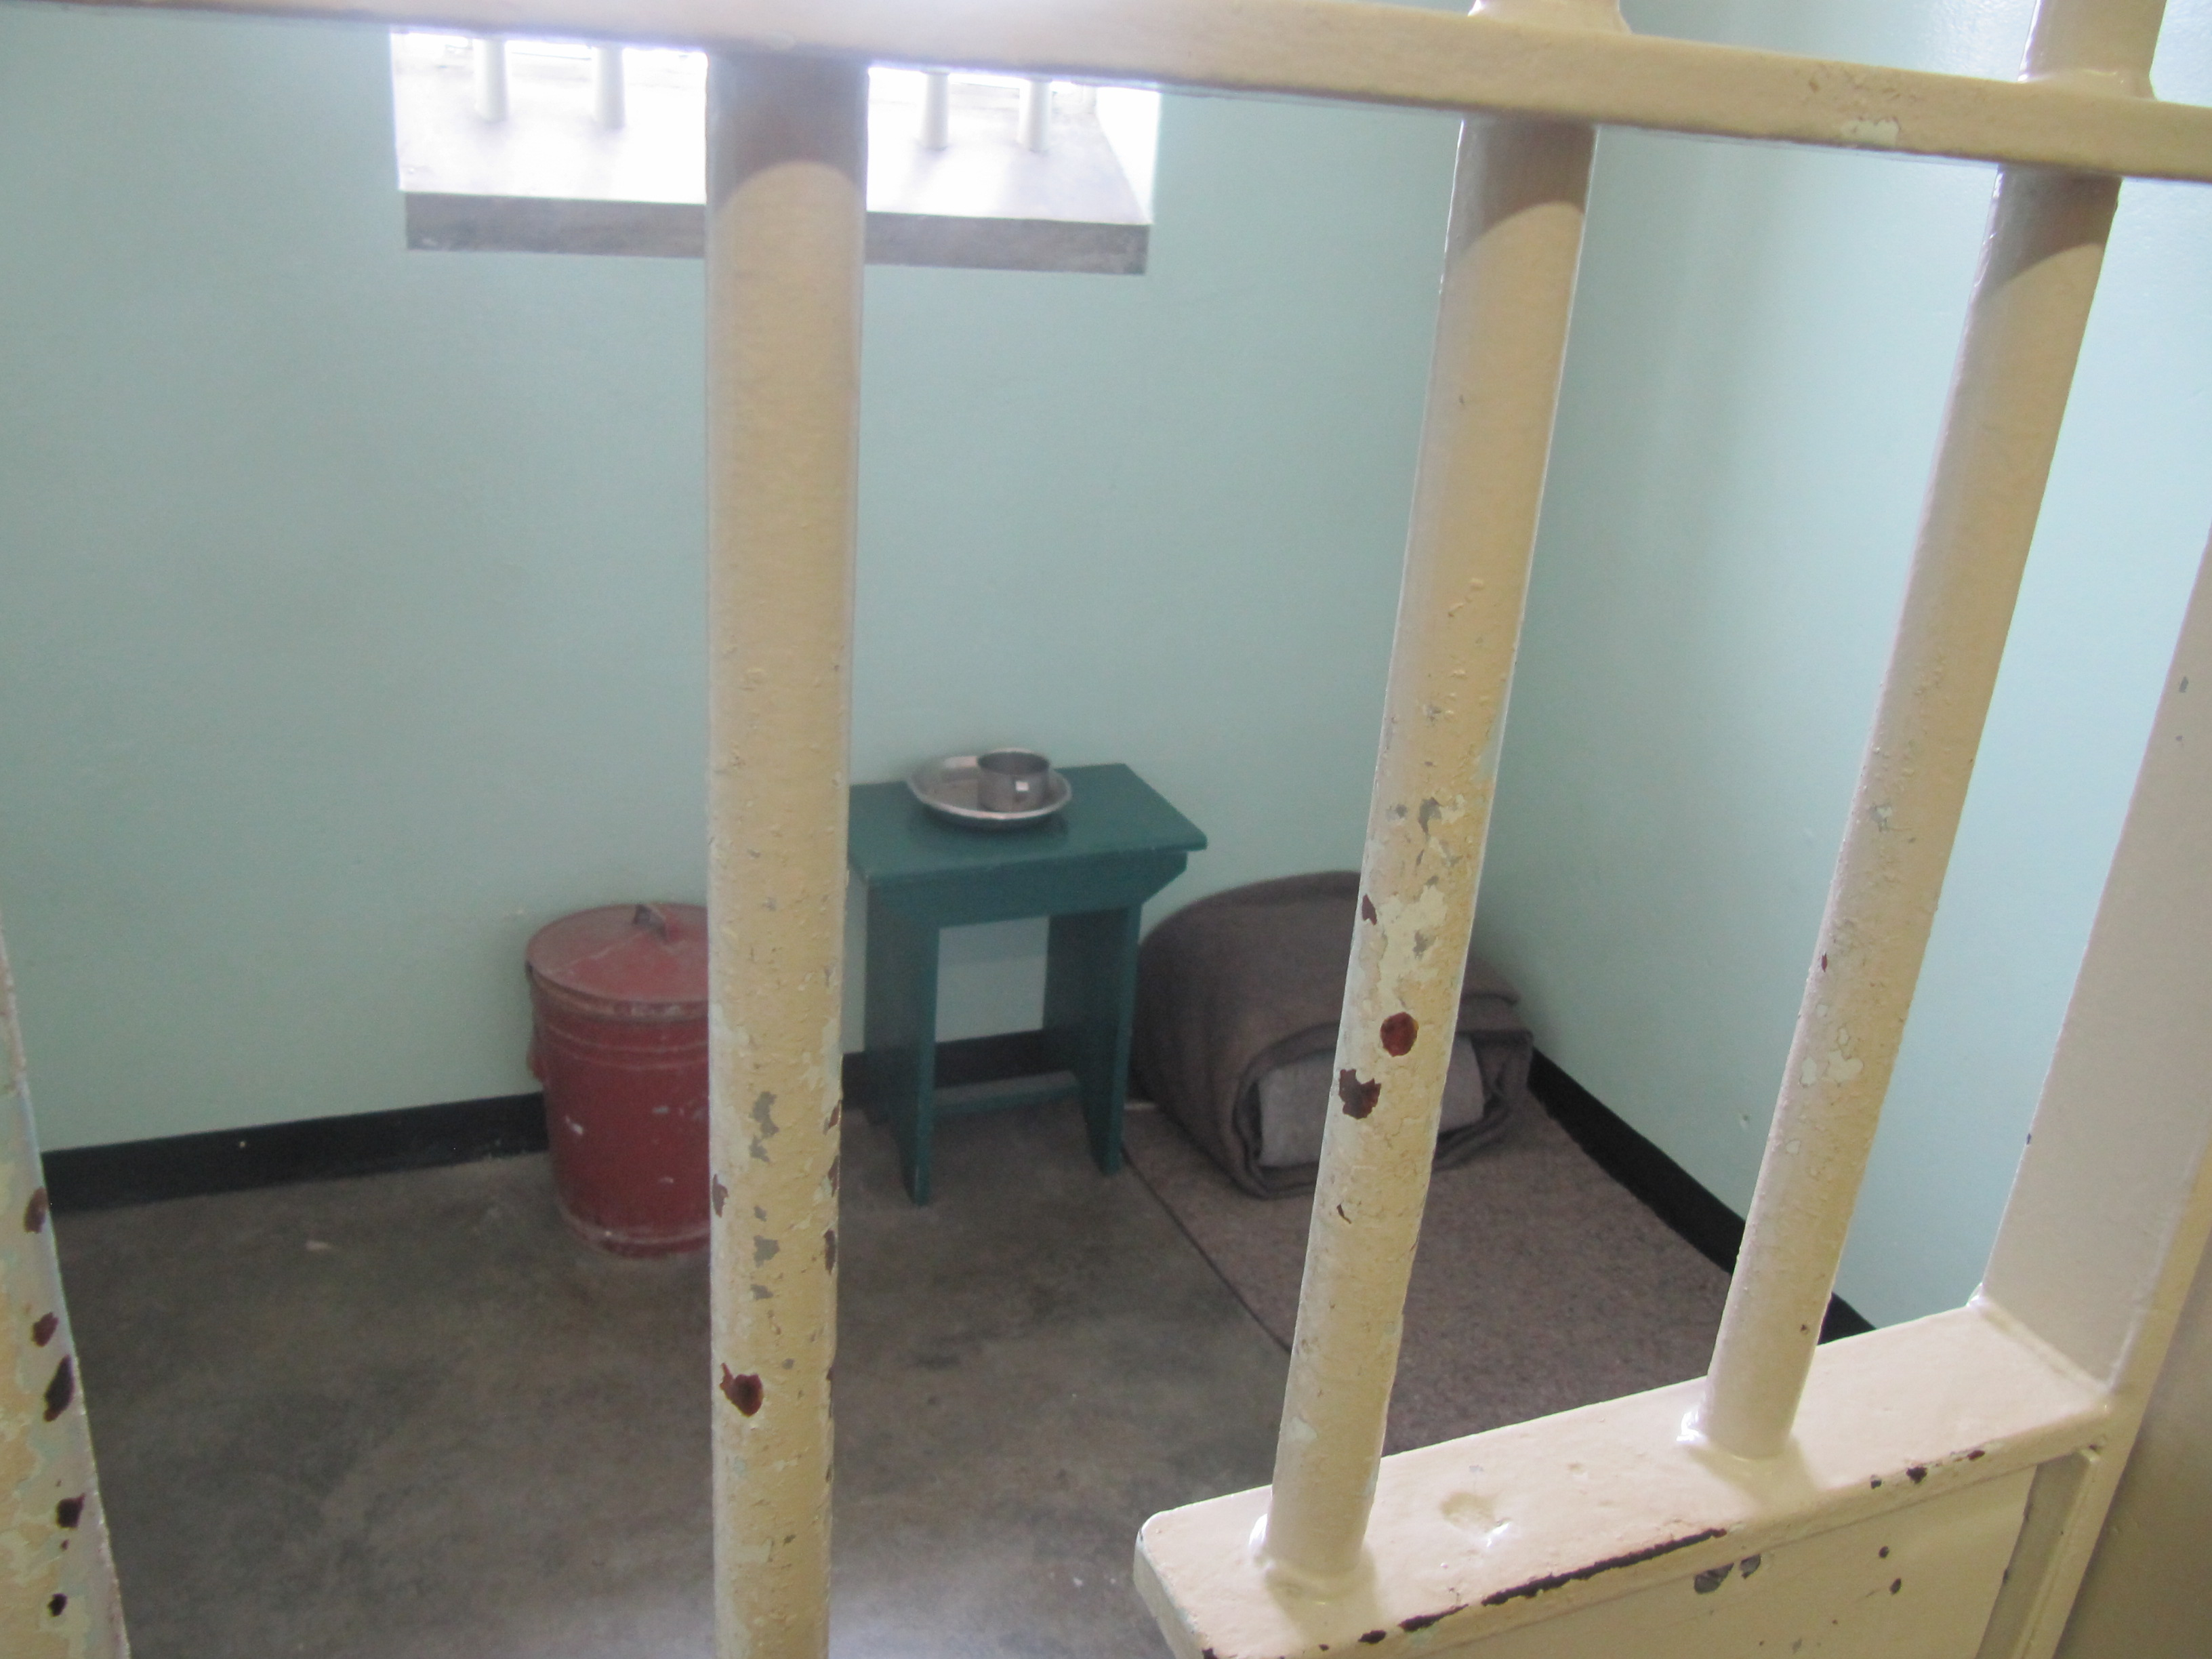 The cell which was home to Mandela